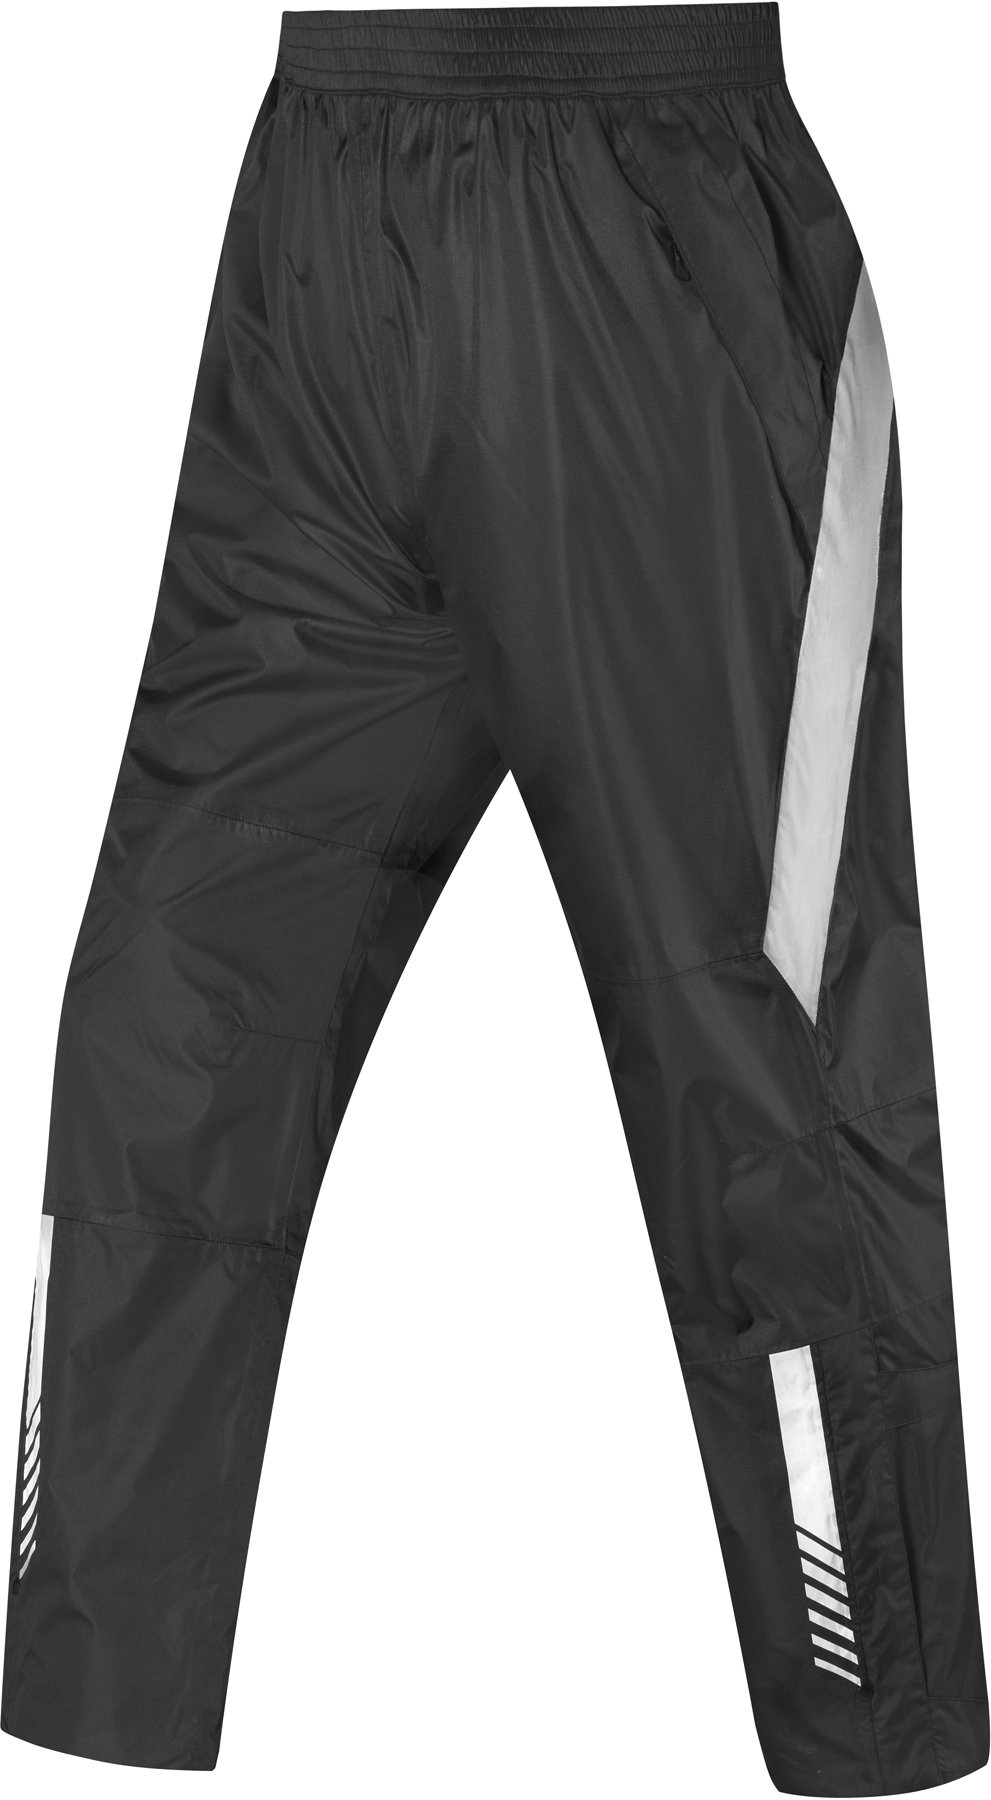 51ed2277e65 Wiggle altura nightvision waterproof over trousers jpg 430x430 Waterproof  overtrousers